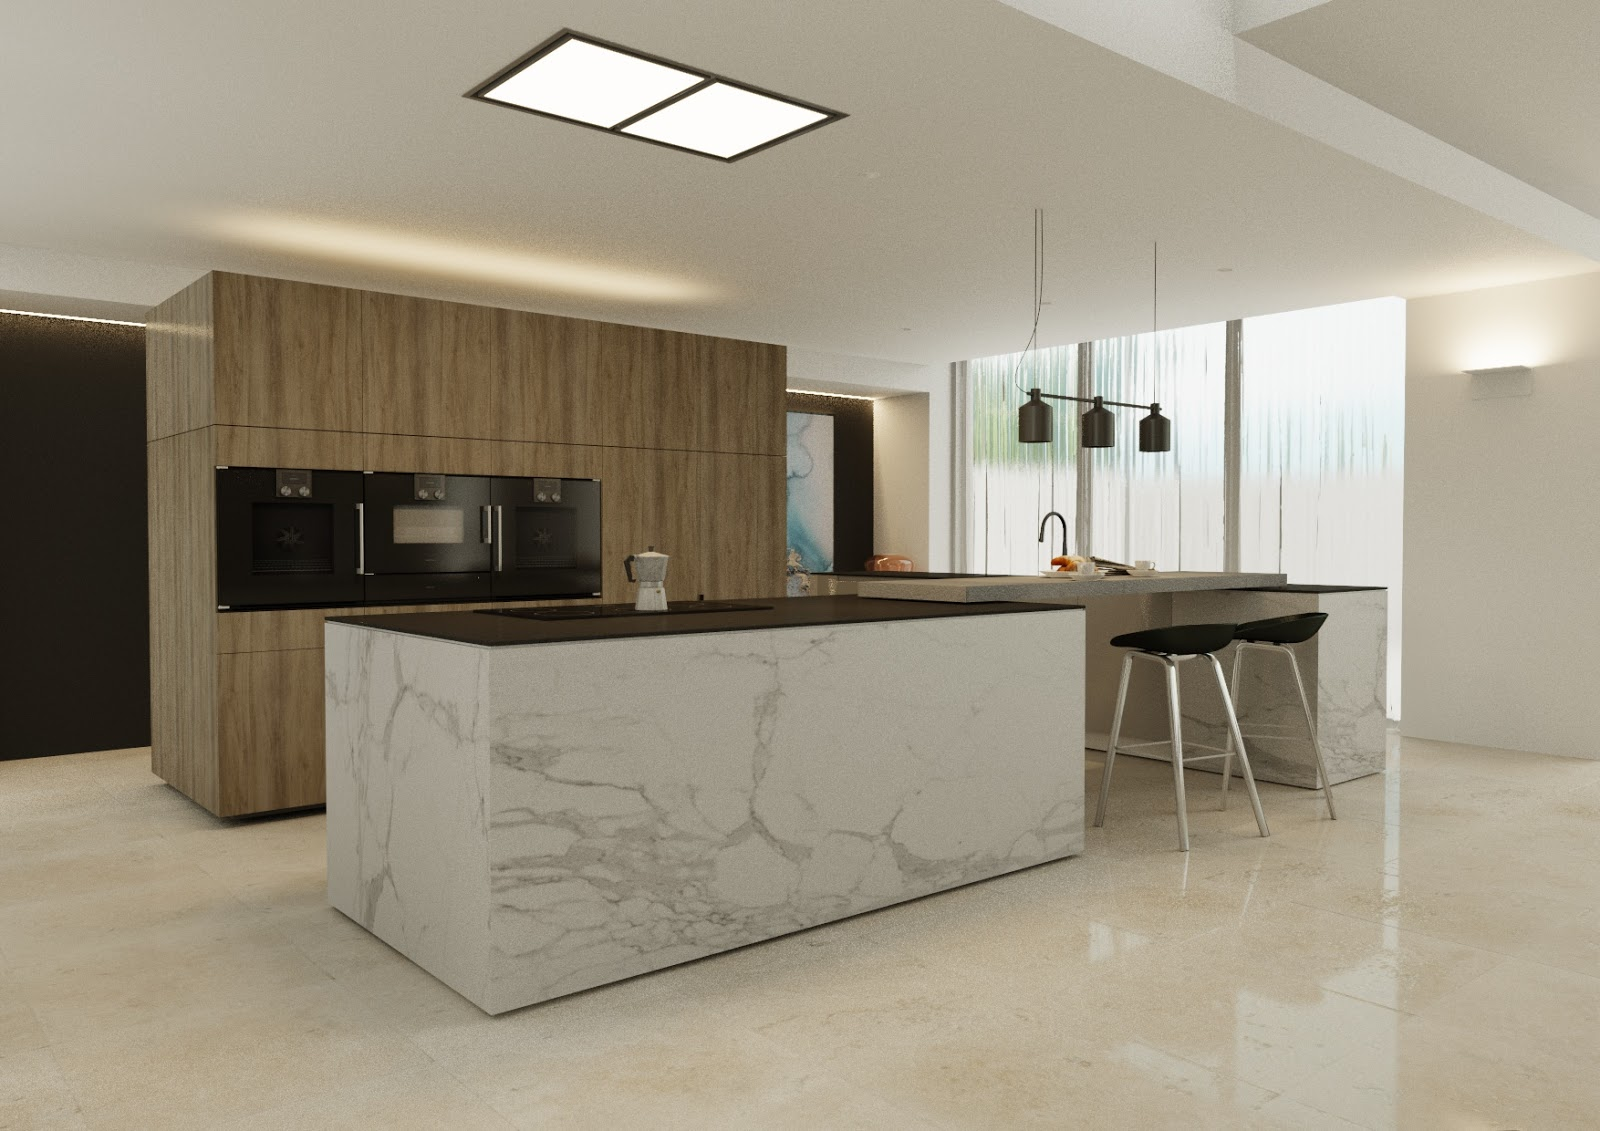 Minosa modern kitchen design requires contemporary approach New contemporary kitchen design